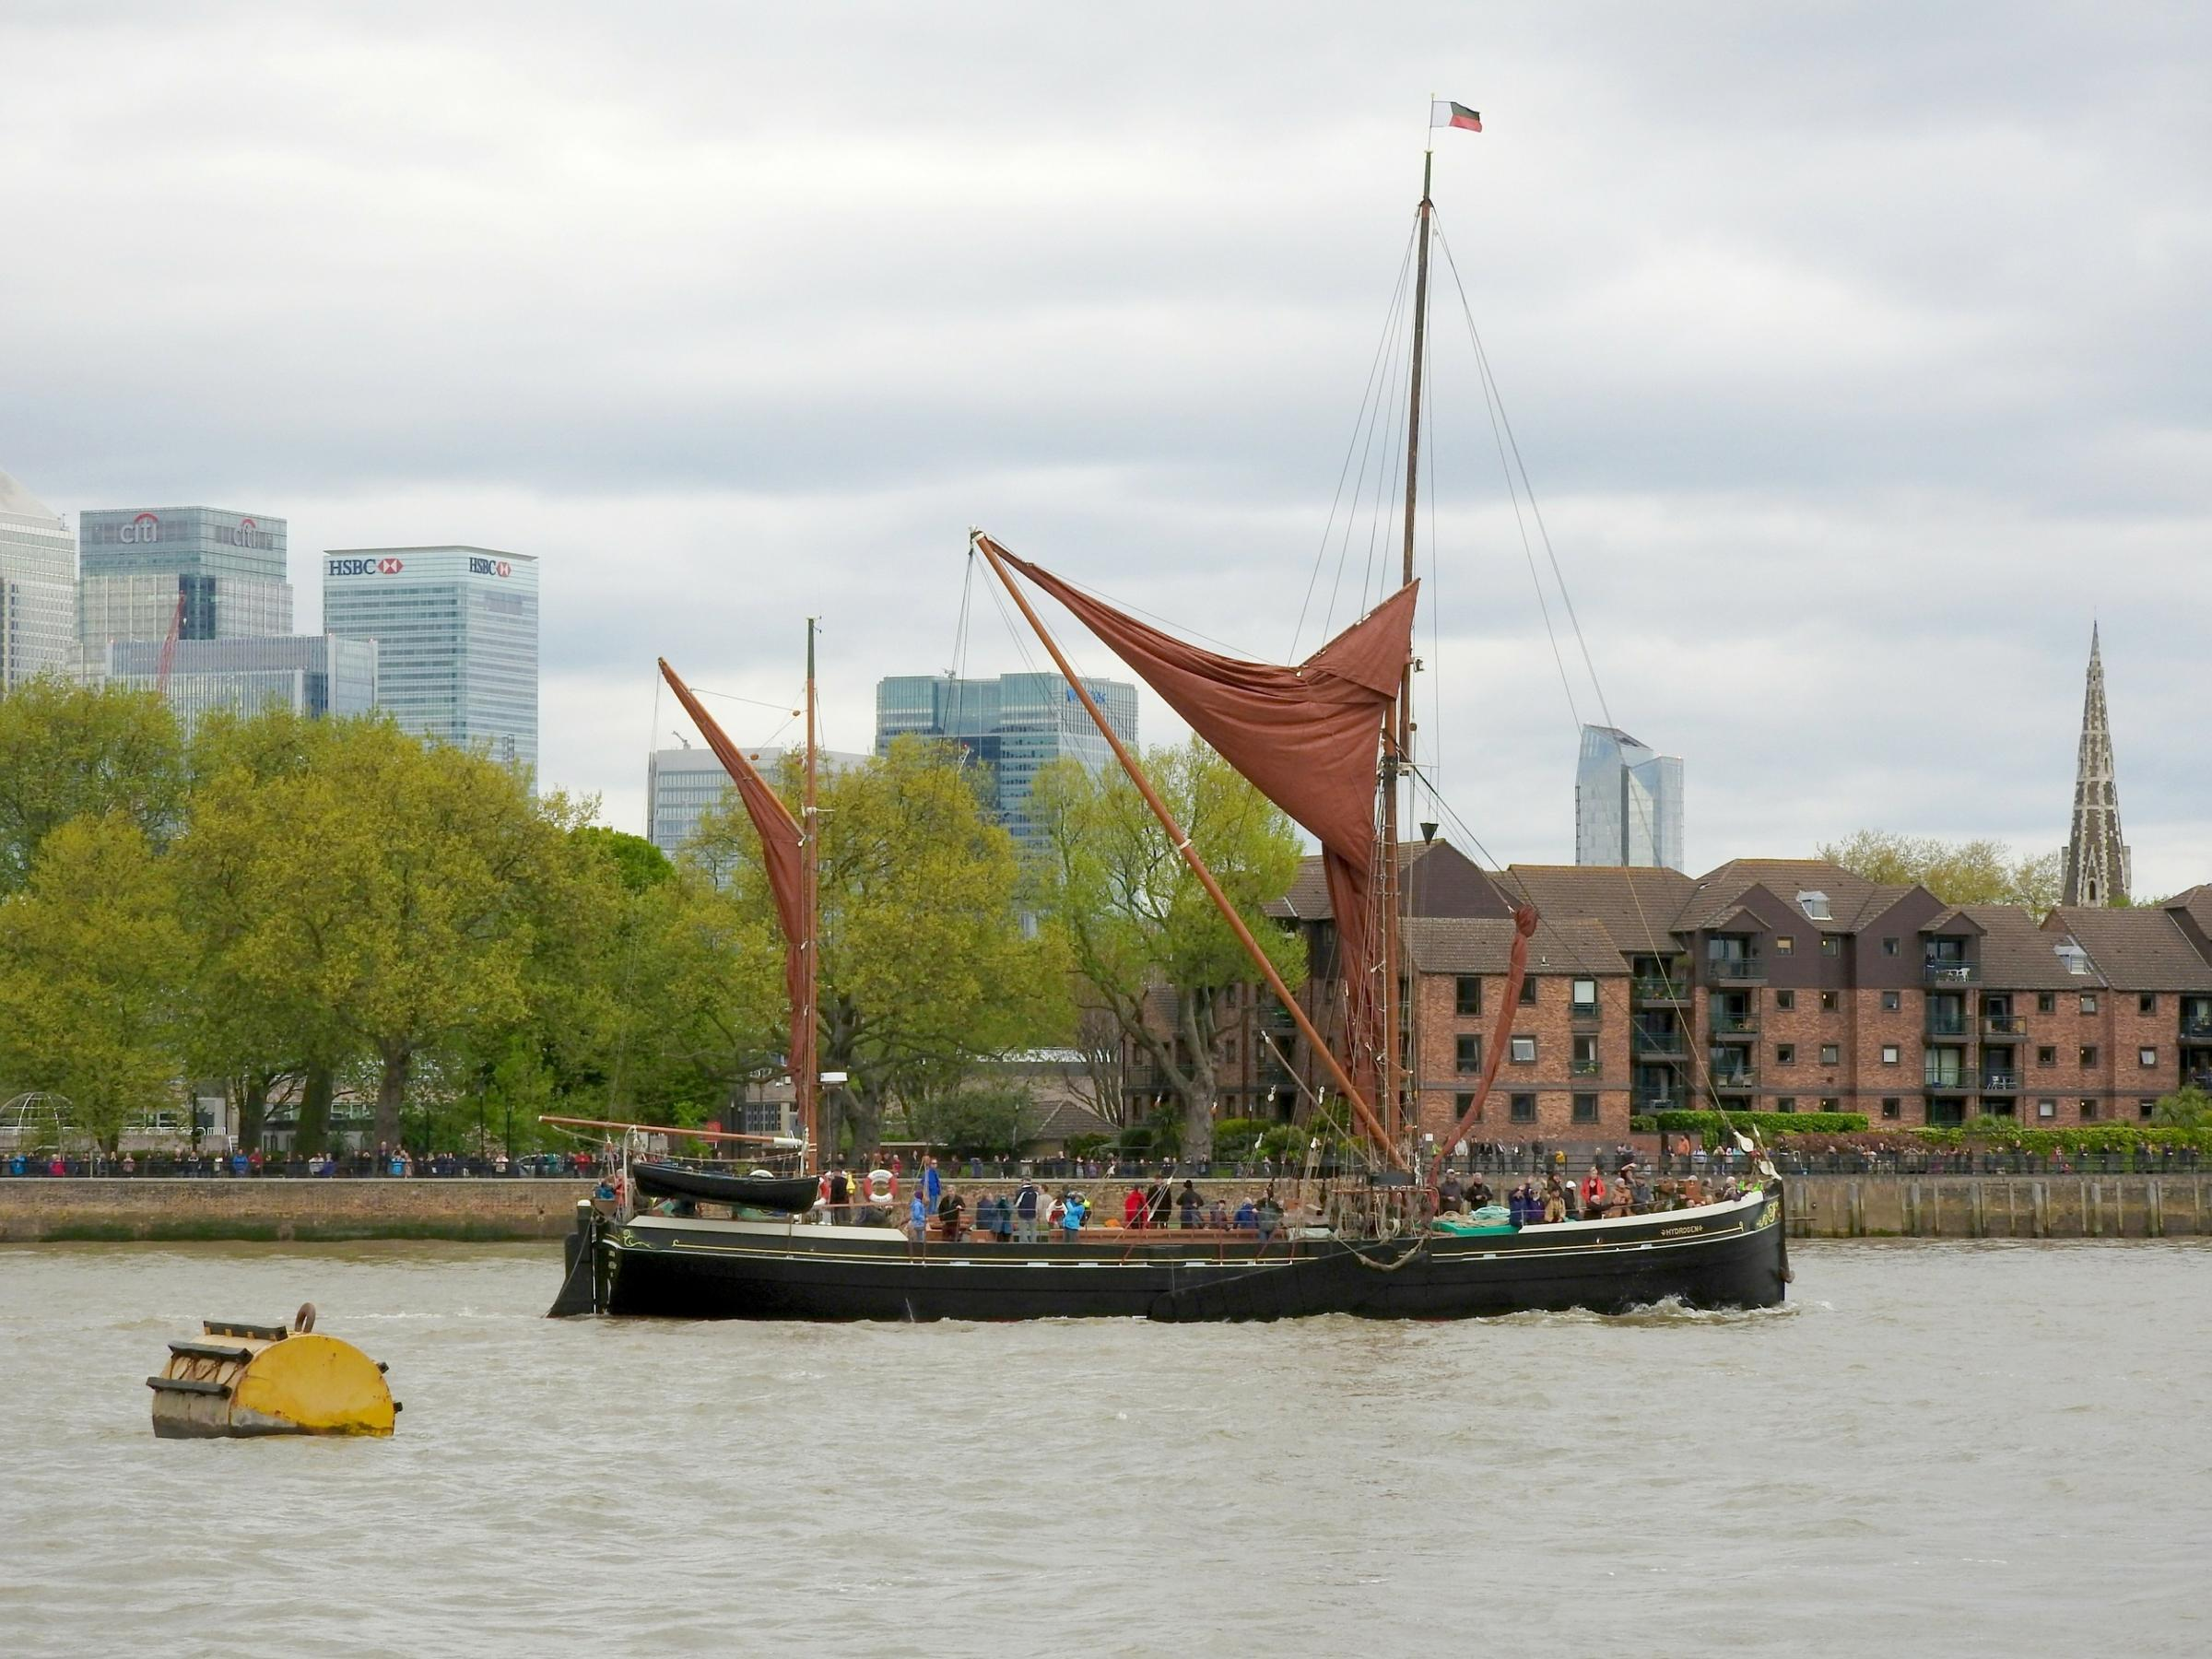 Barage parade to sail along the Thames outside Greenwich and Deptford